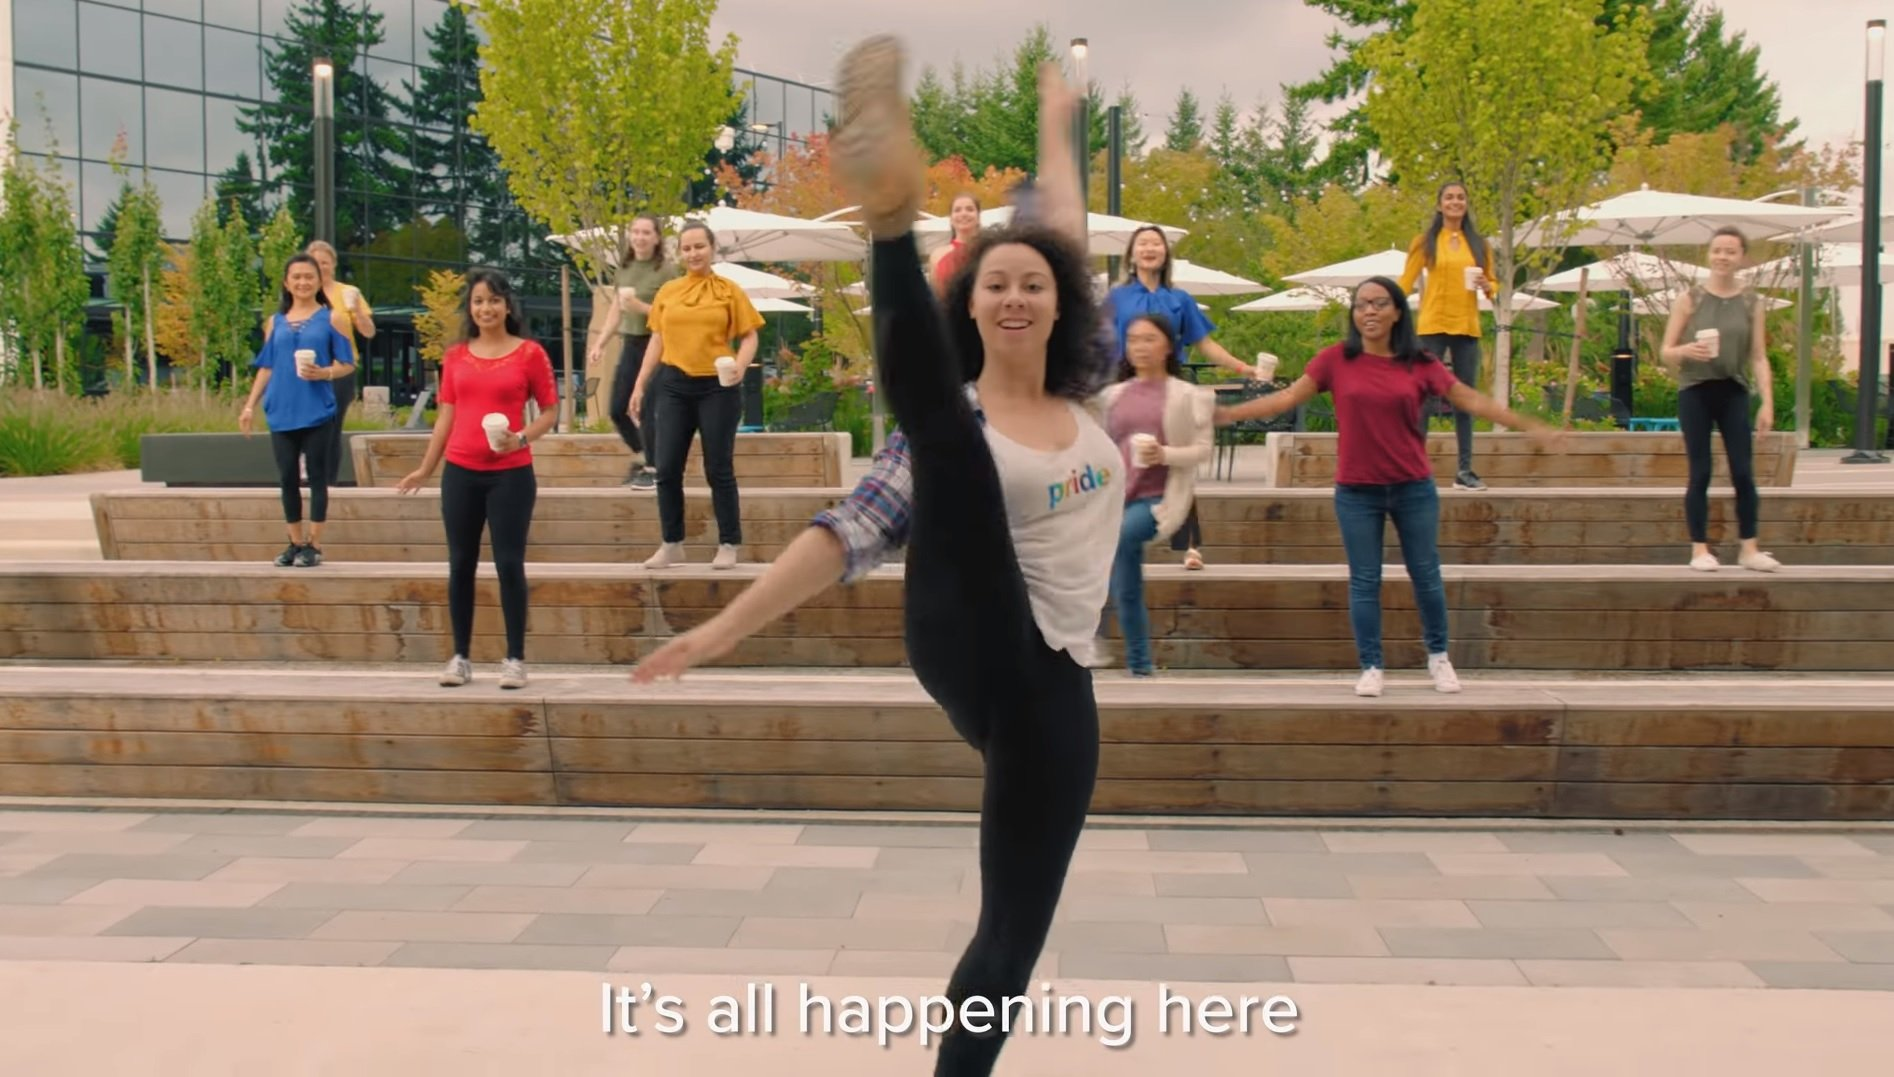 D'aw! They still have hope! Interns make a song and dance of their summer at Microsoft